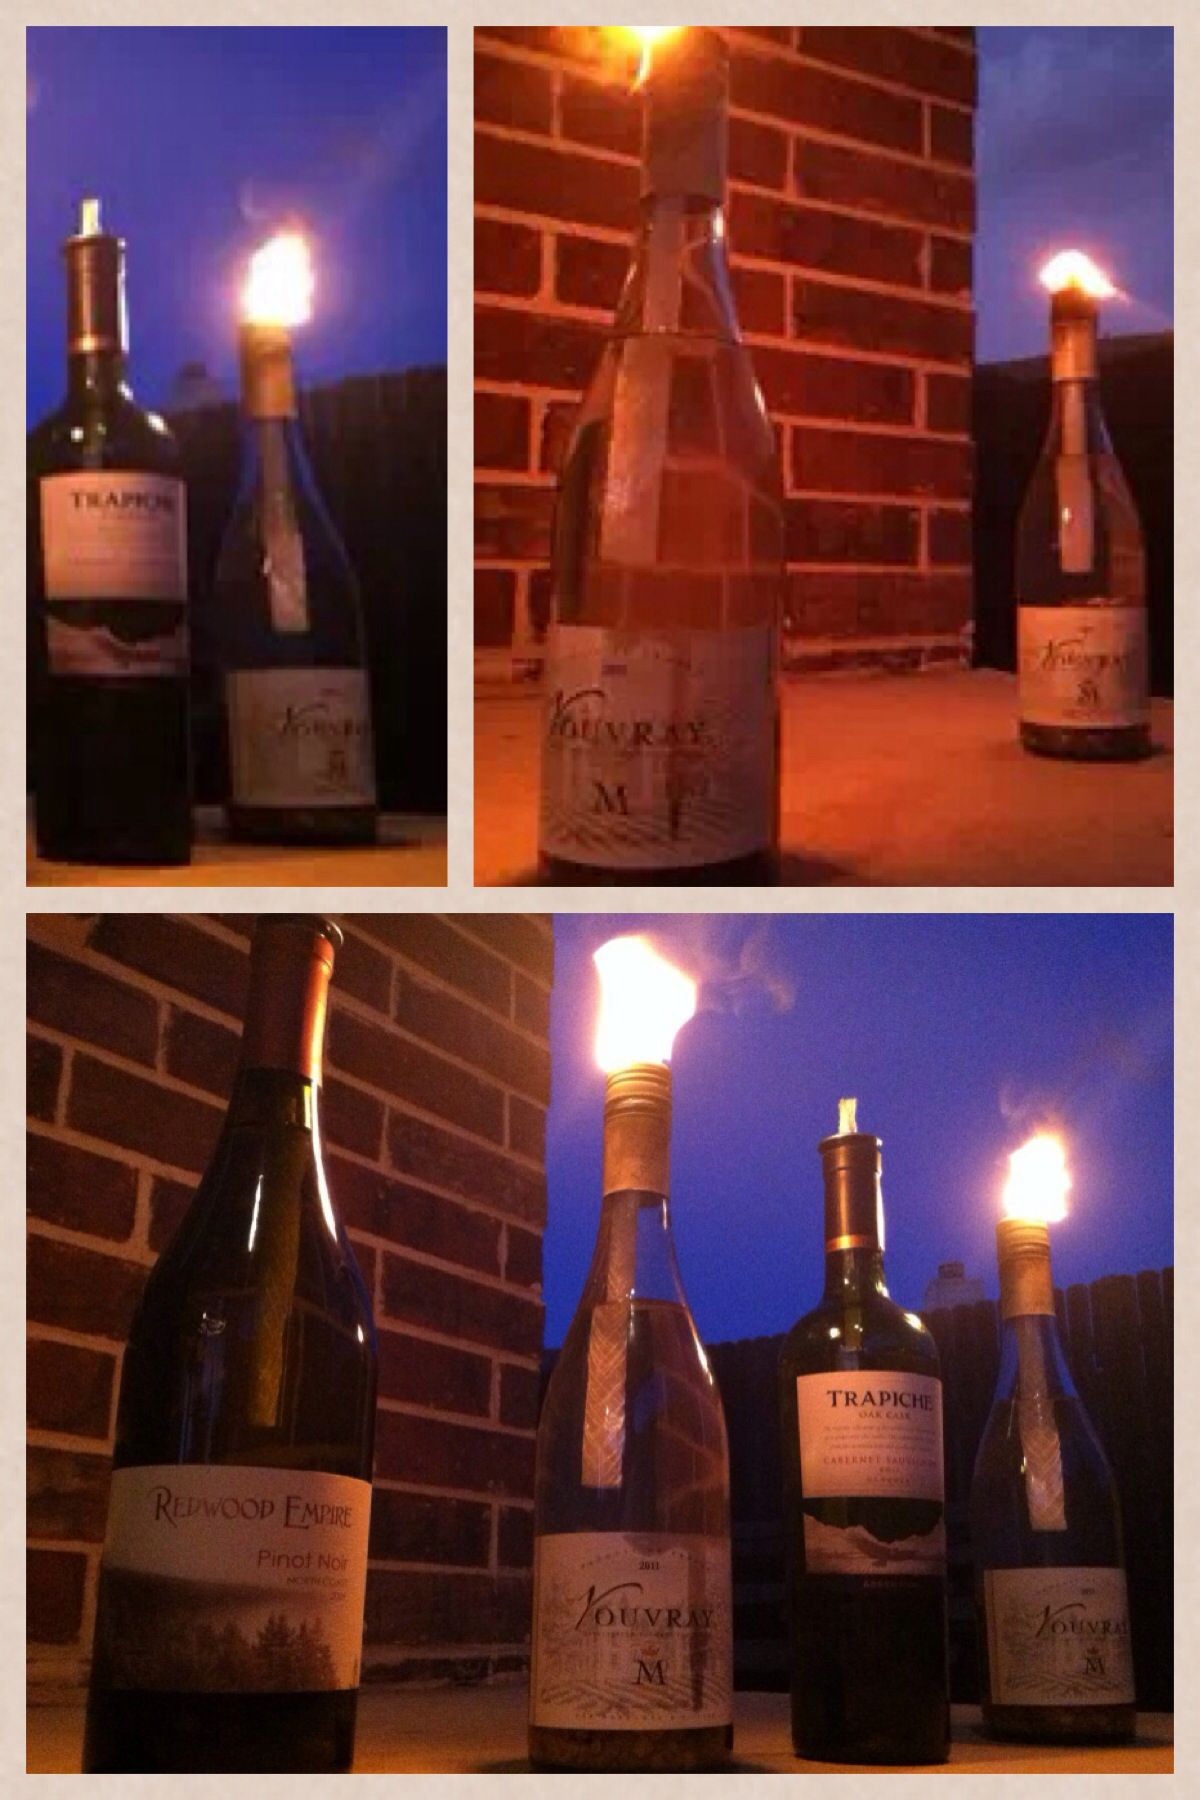 Easy To Make Citronella Oil Lanterns Fill Clean Wine Bottle With Decorative Stones Fill With Oil Insert Wick Into Bottles Decoration Oil Lantern Wine Bottle